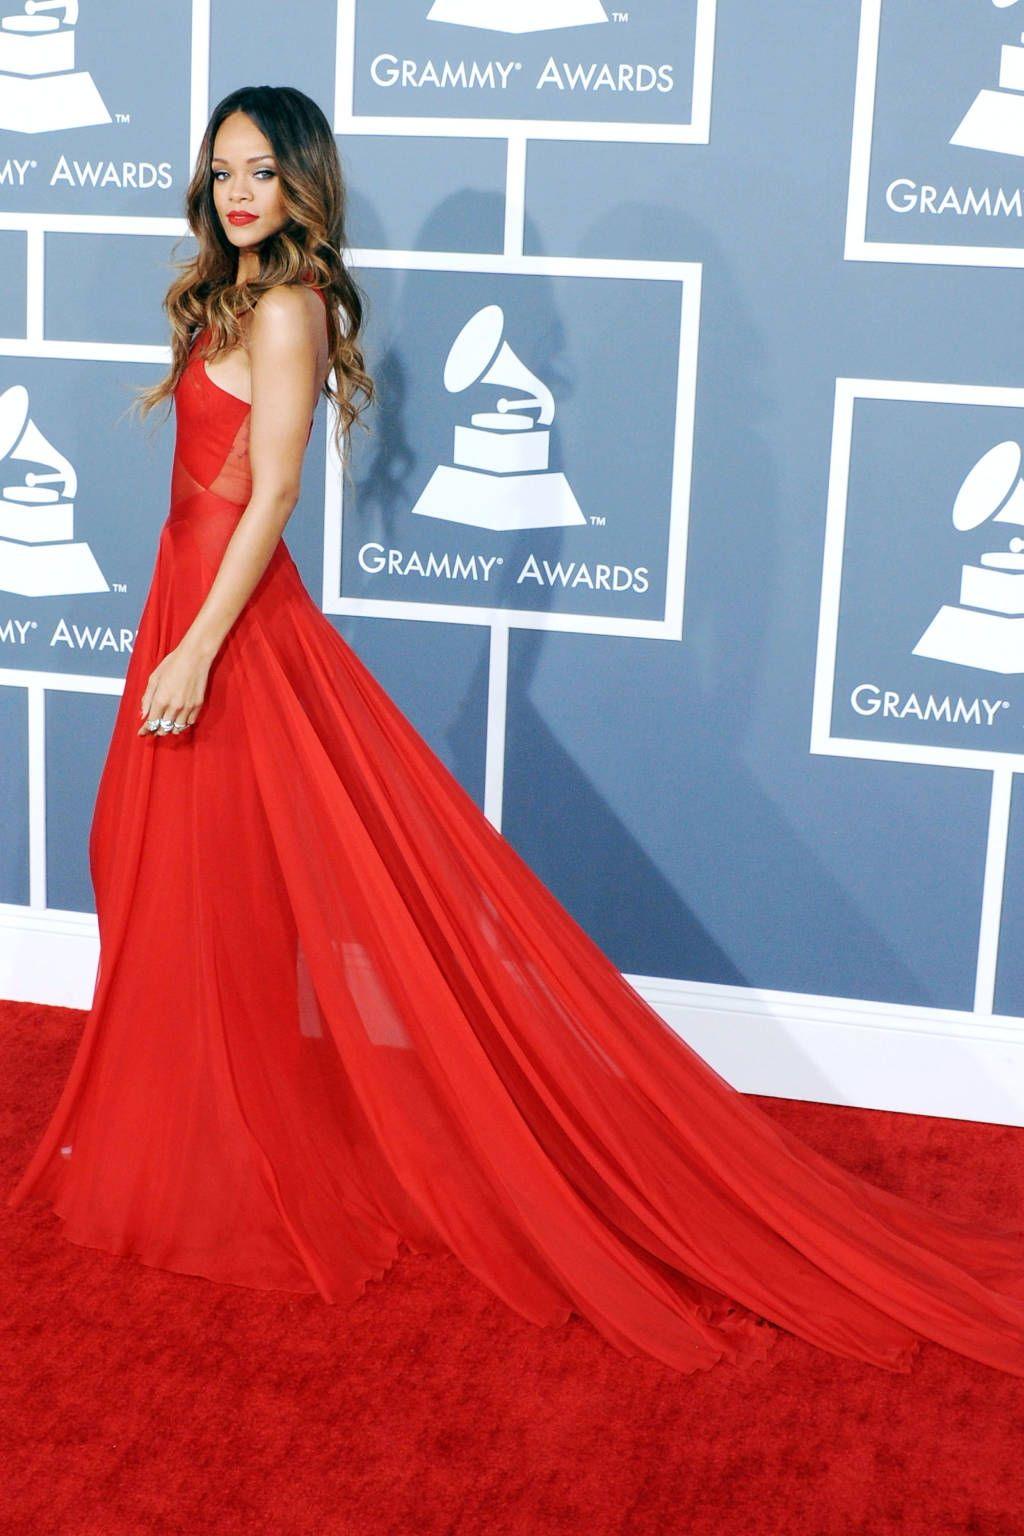 The Best Red Carpet Gowns Of All Time Red Carpet Dresses Best Red Carpet Gowns Red Carpet Dresses